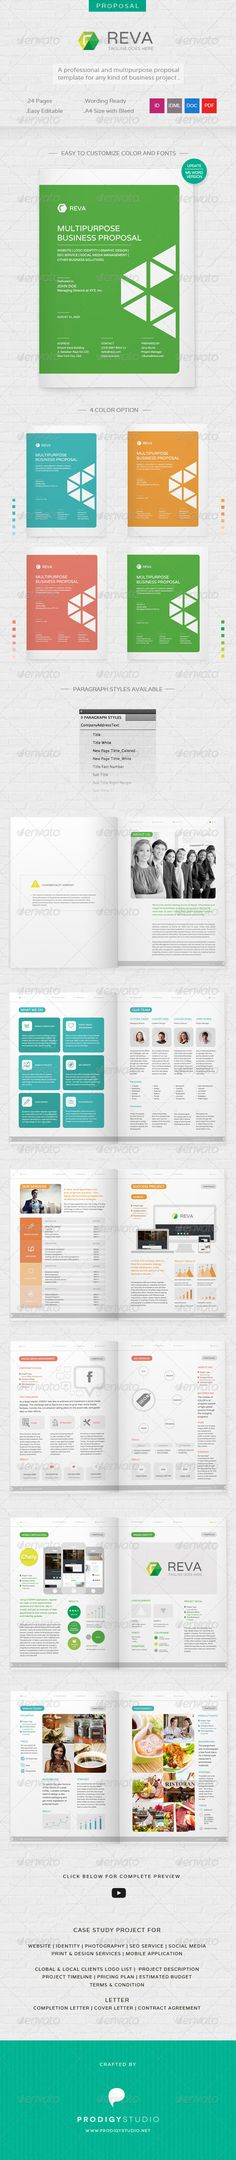 Proposal  Web Proposal Template  Proposals  Invoices Stationery